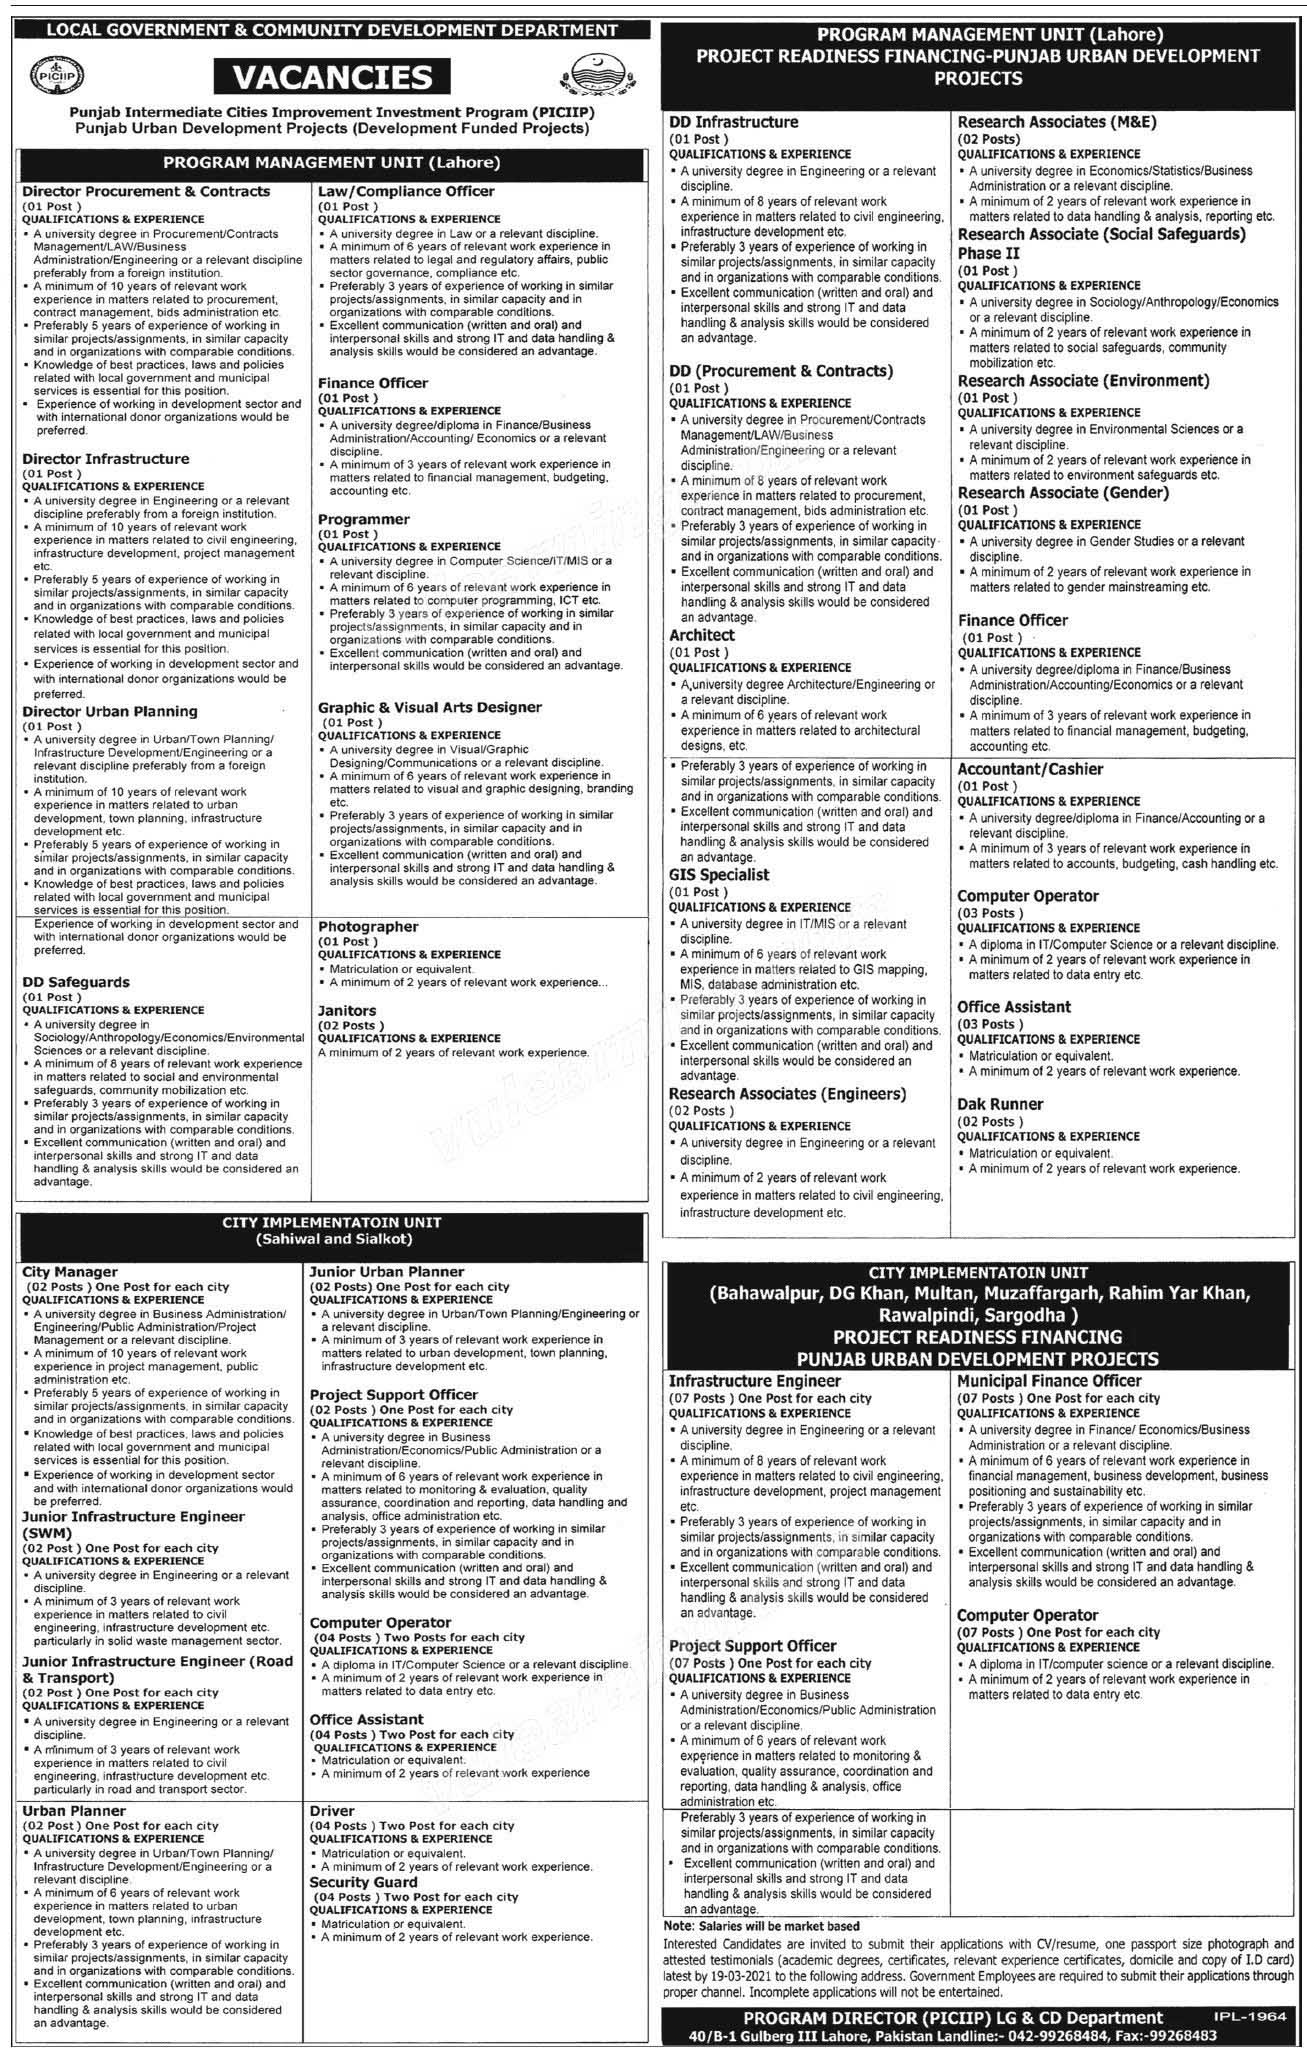 PICIIPLahore Directors, Research Associates, Finance Officers, Computer Operators, Engineers, Drivers, Office Assistants, Project Support Officers Jobs march 2021